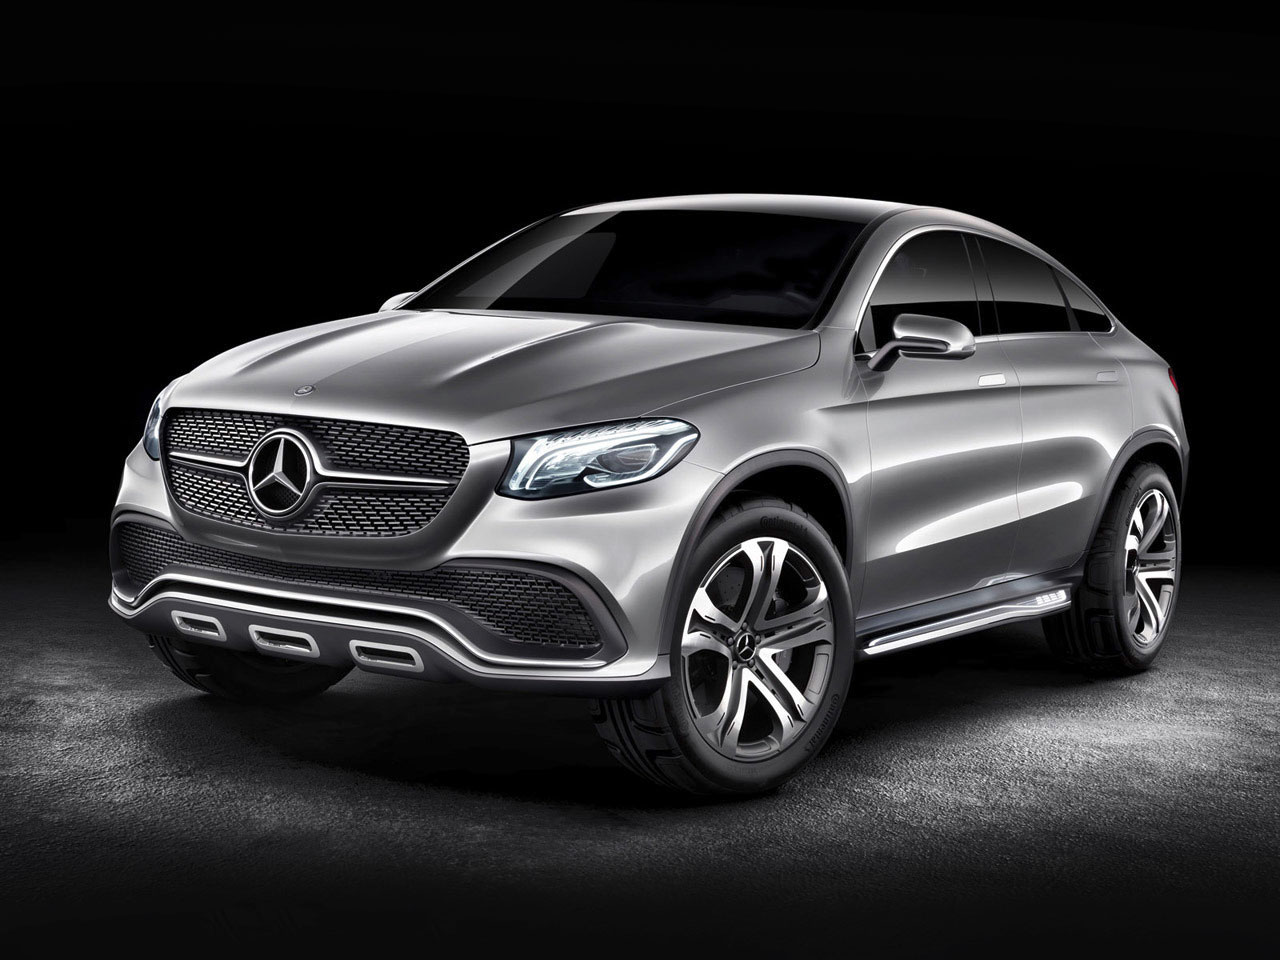 Mercedes benz concept coupe suv car body design for Mercedes benz concept suv